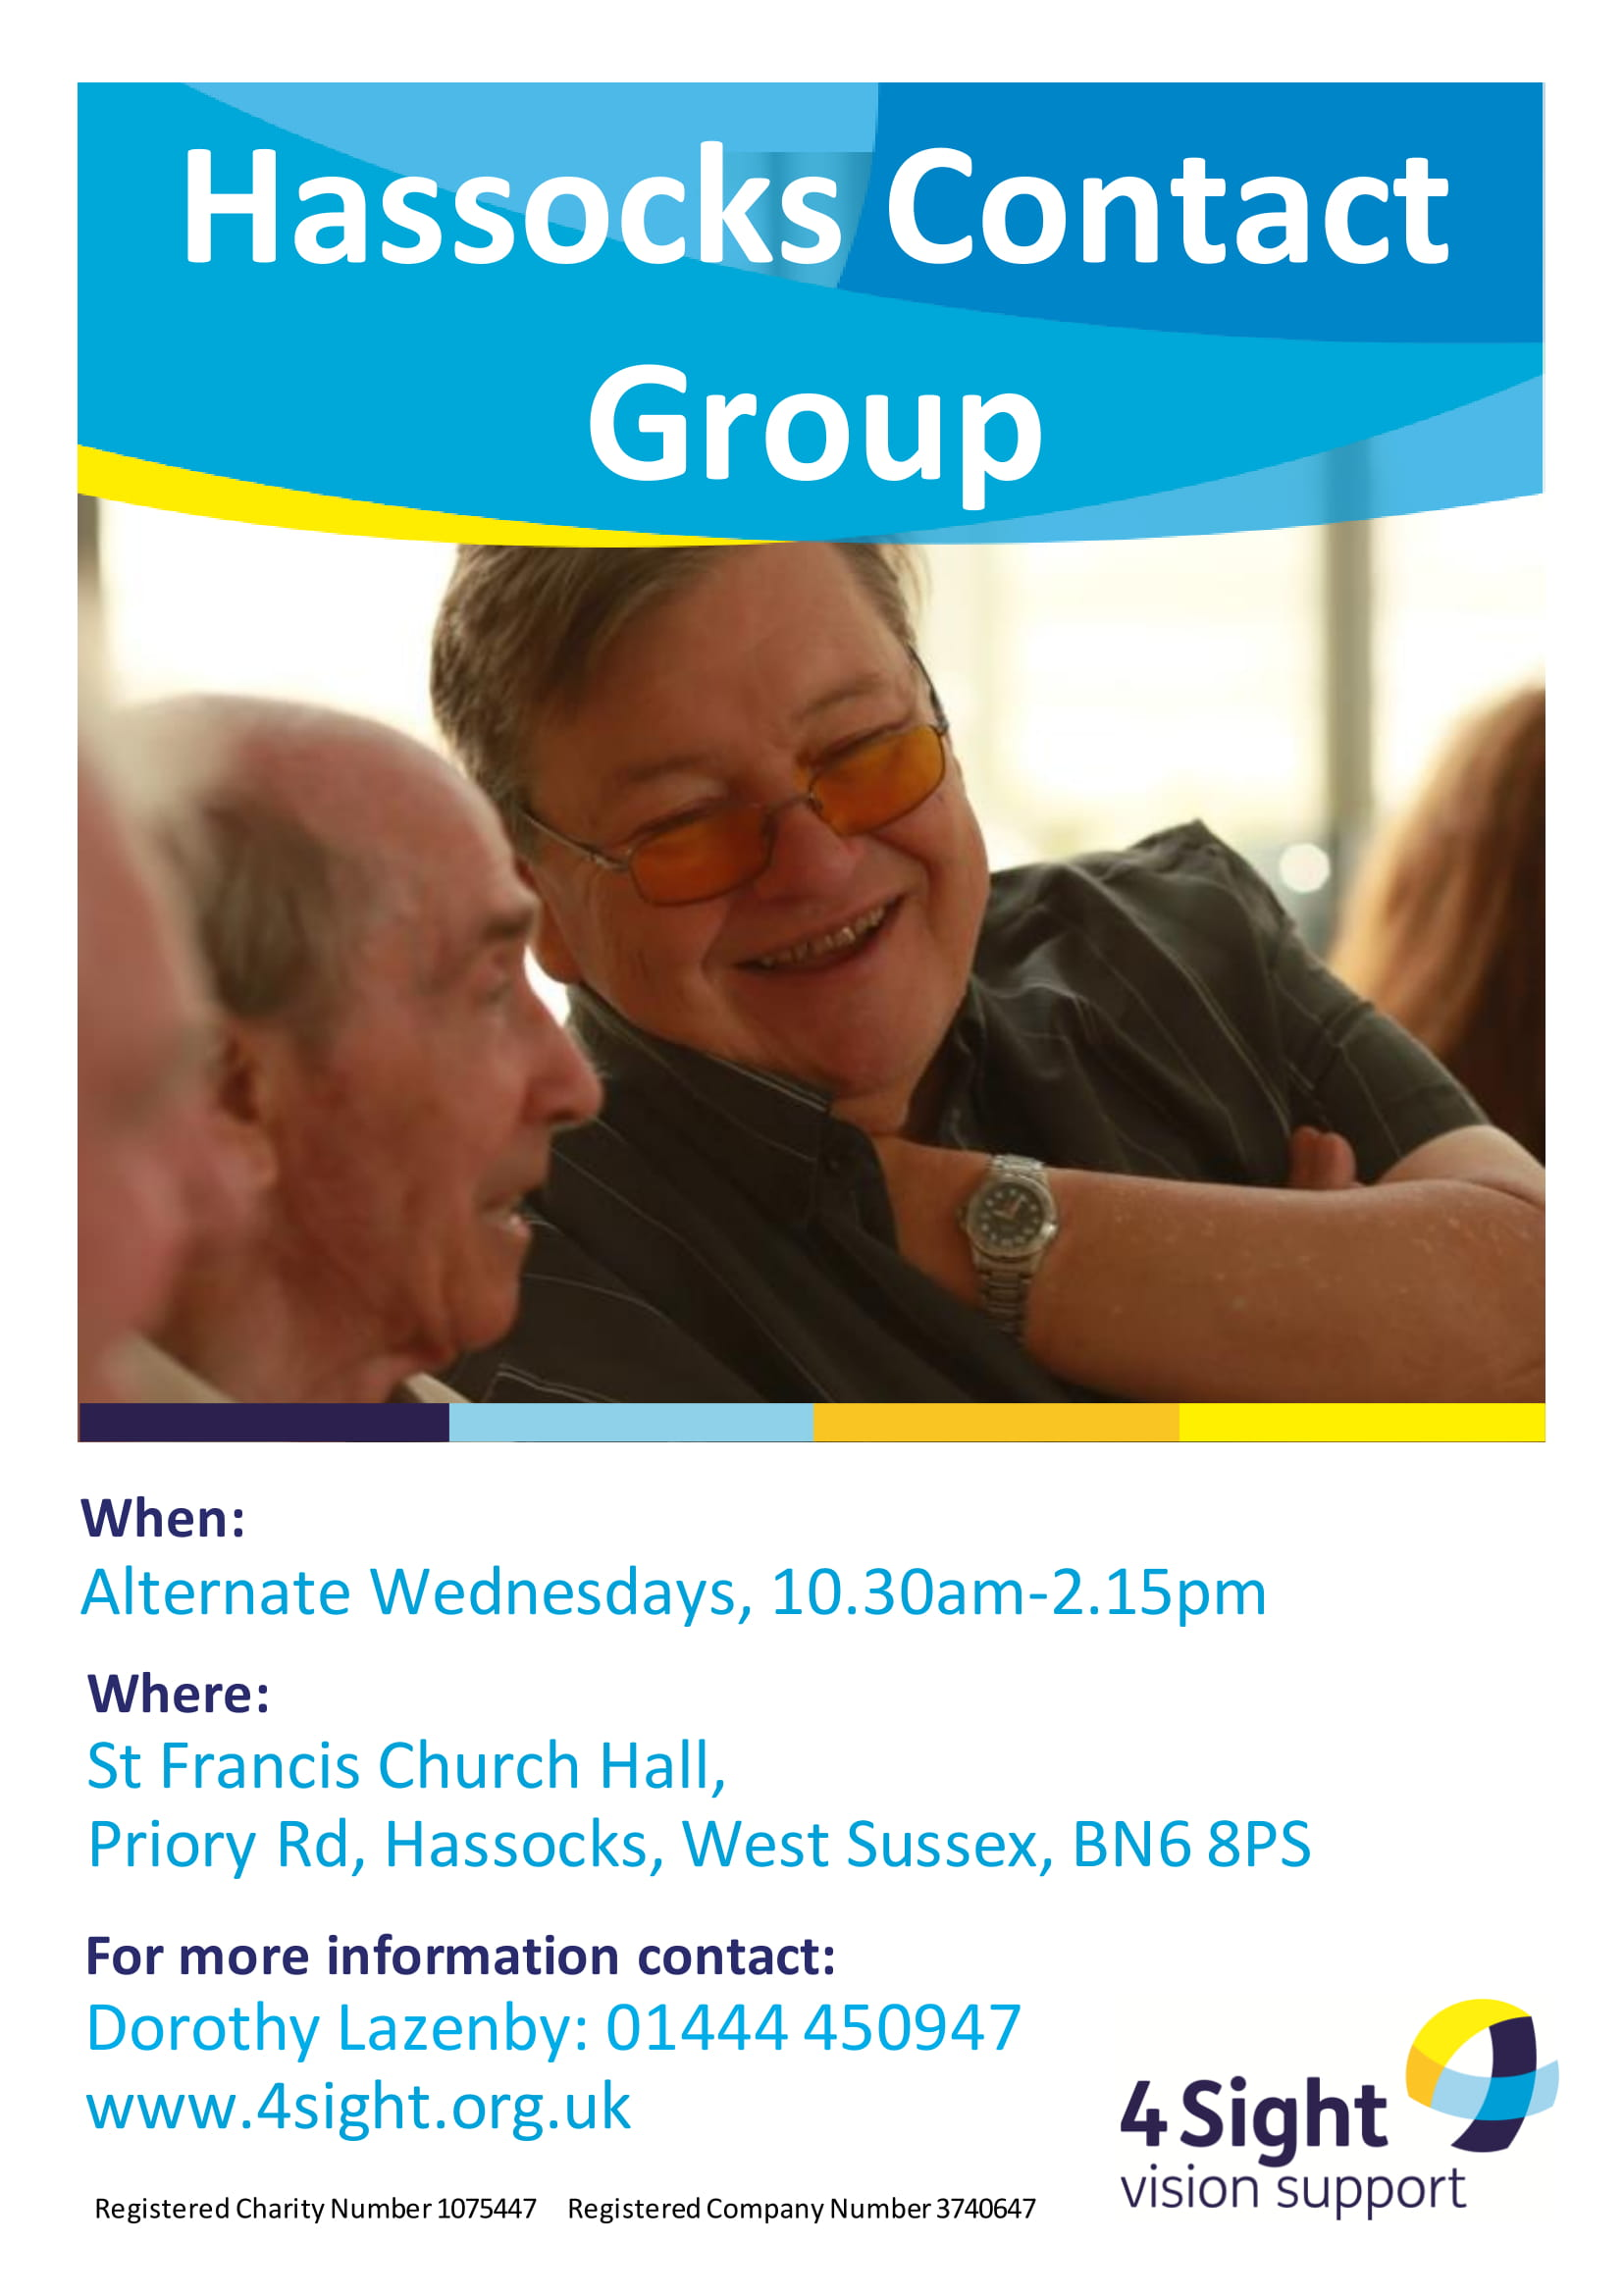 Hassocks Contact Group-1